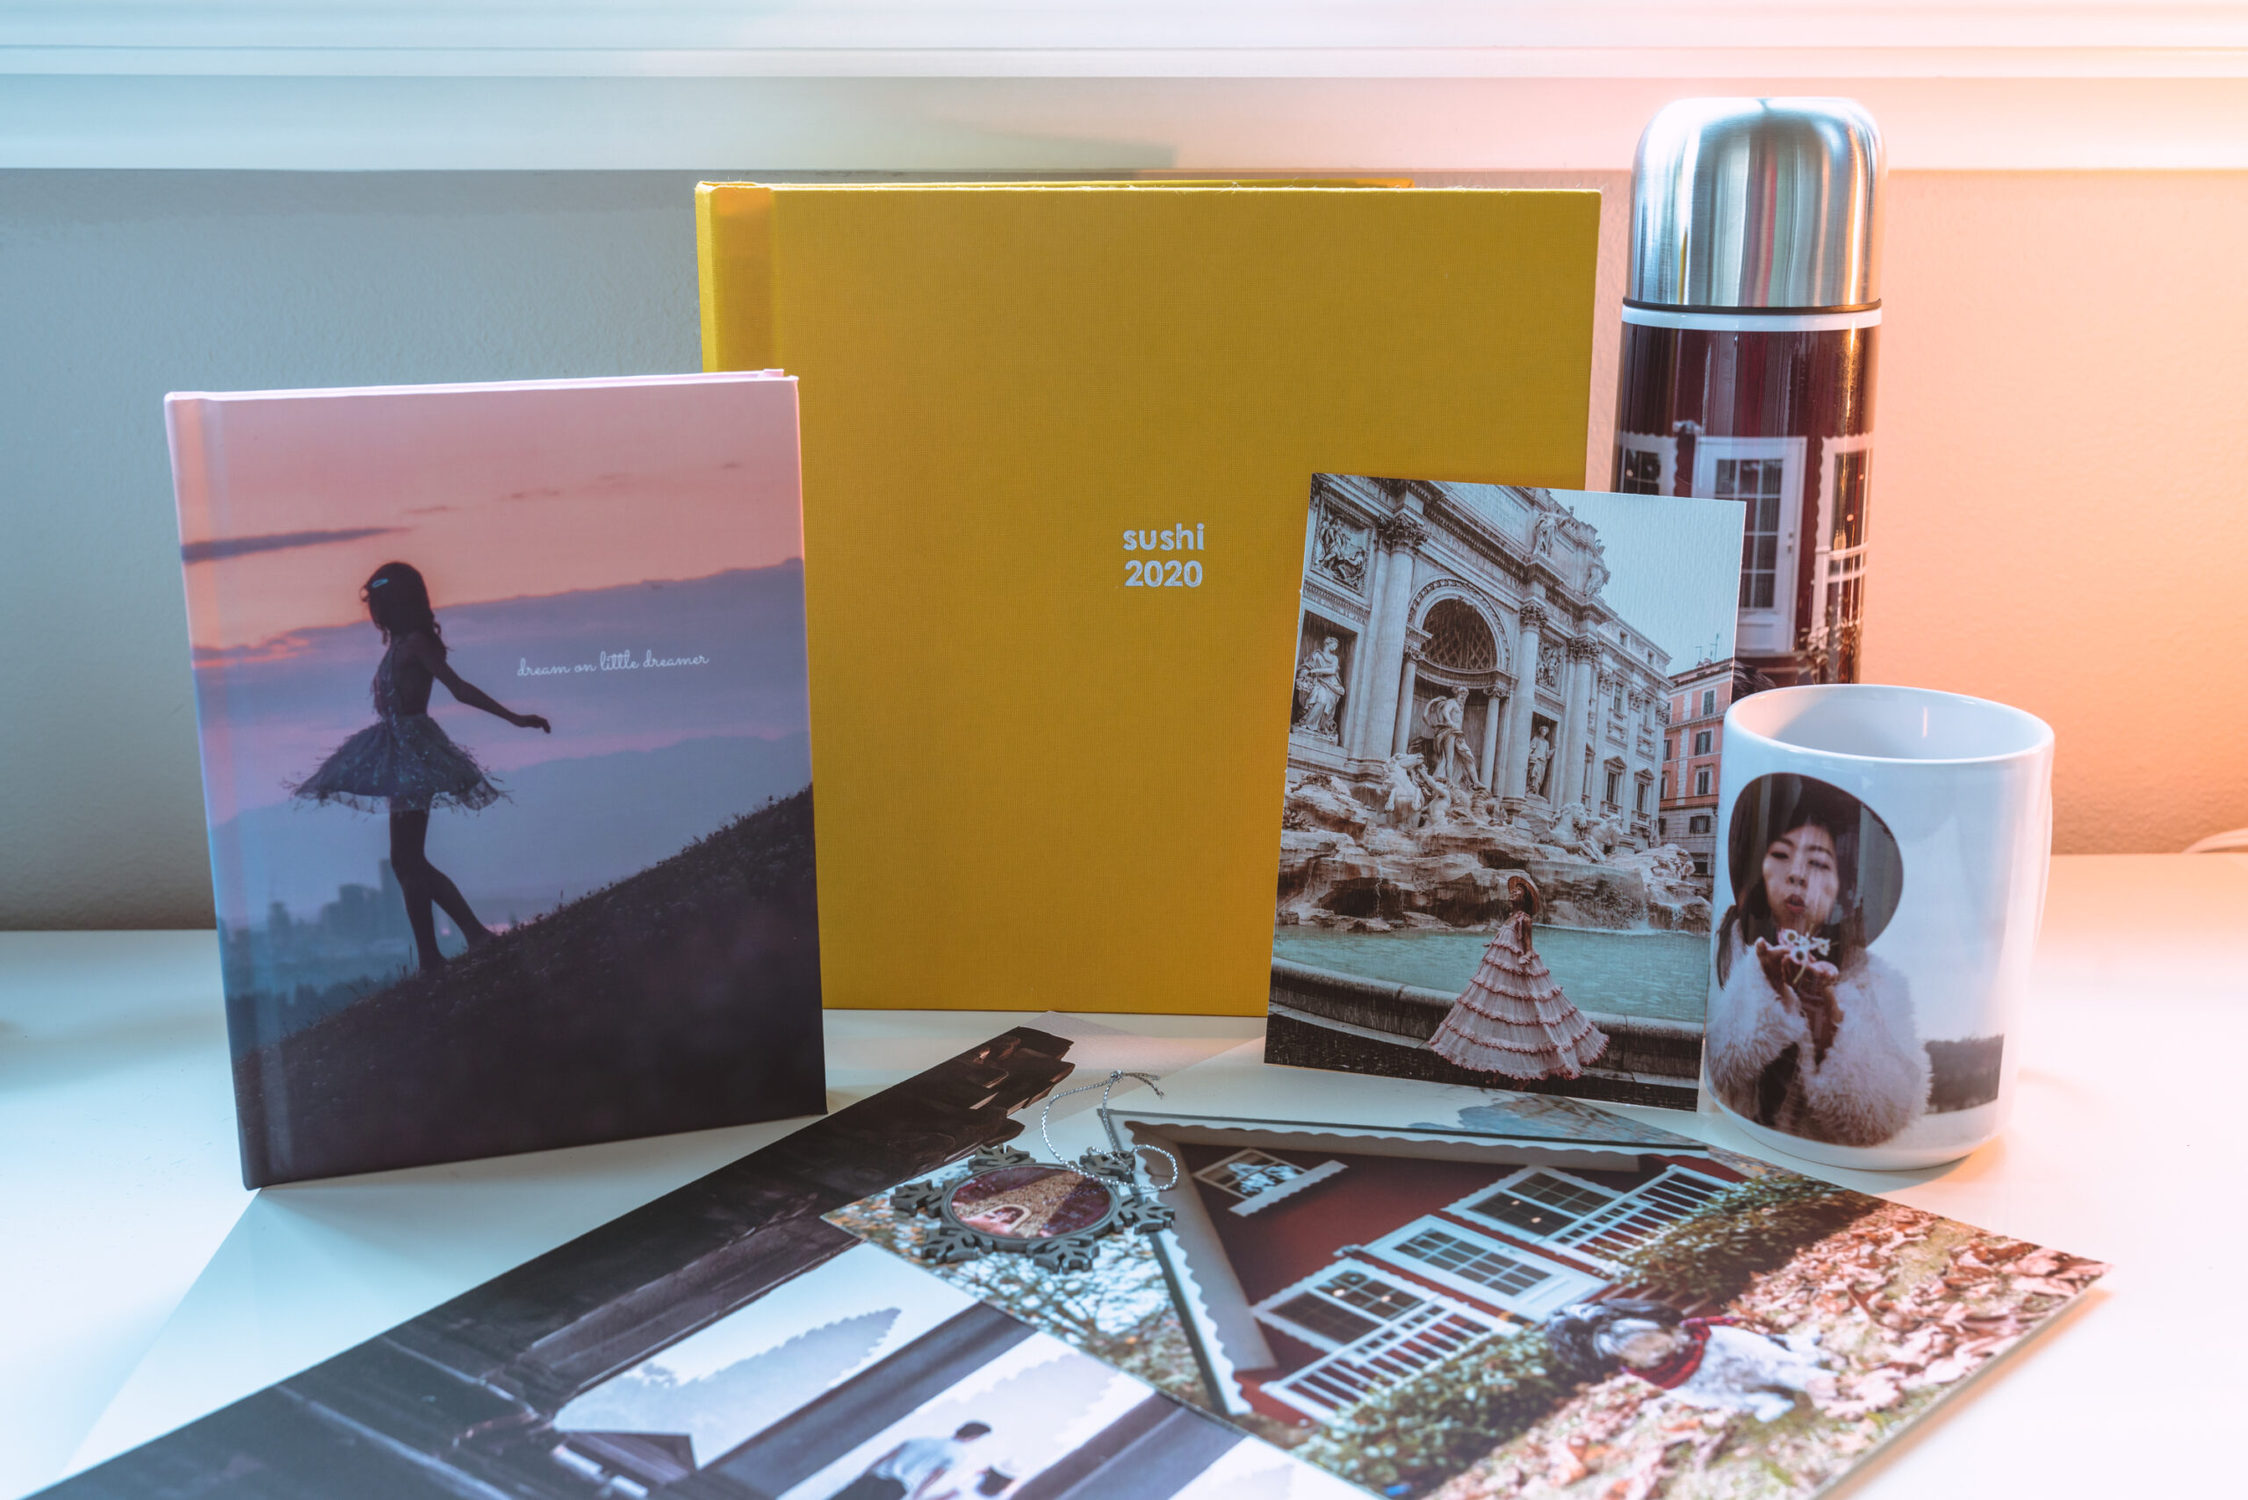 Image of different products with photos on them including a photo book, prints, journal and mug